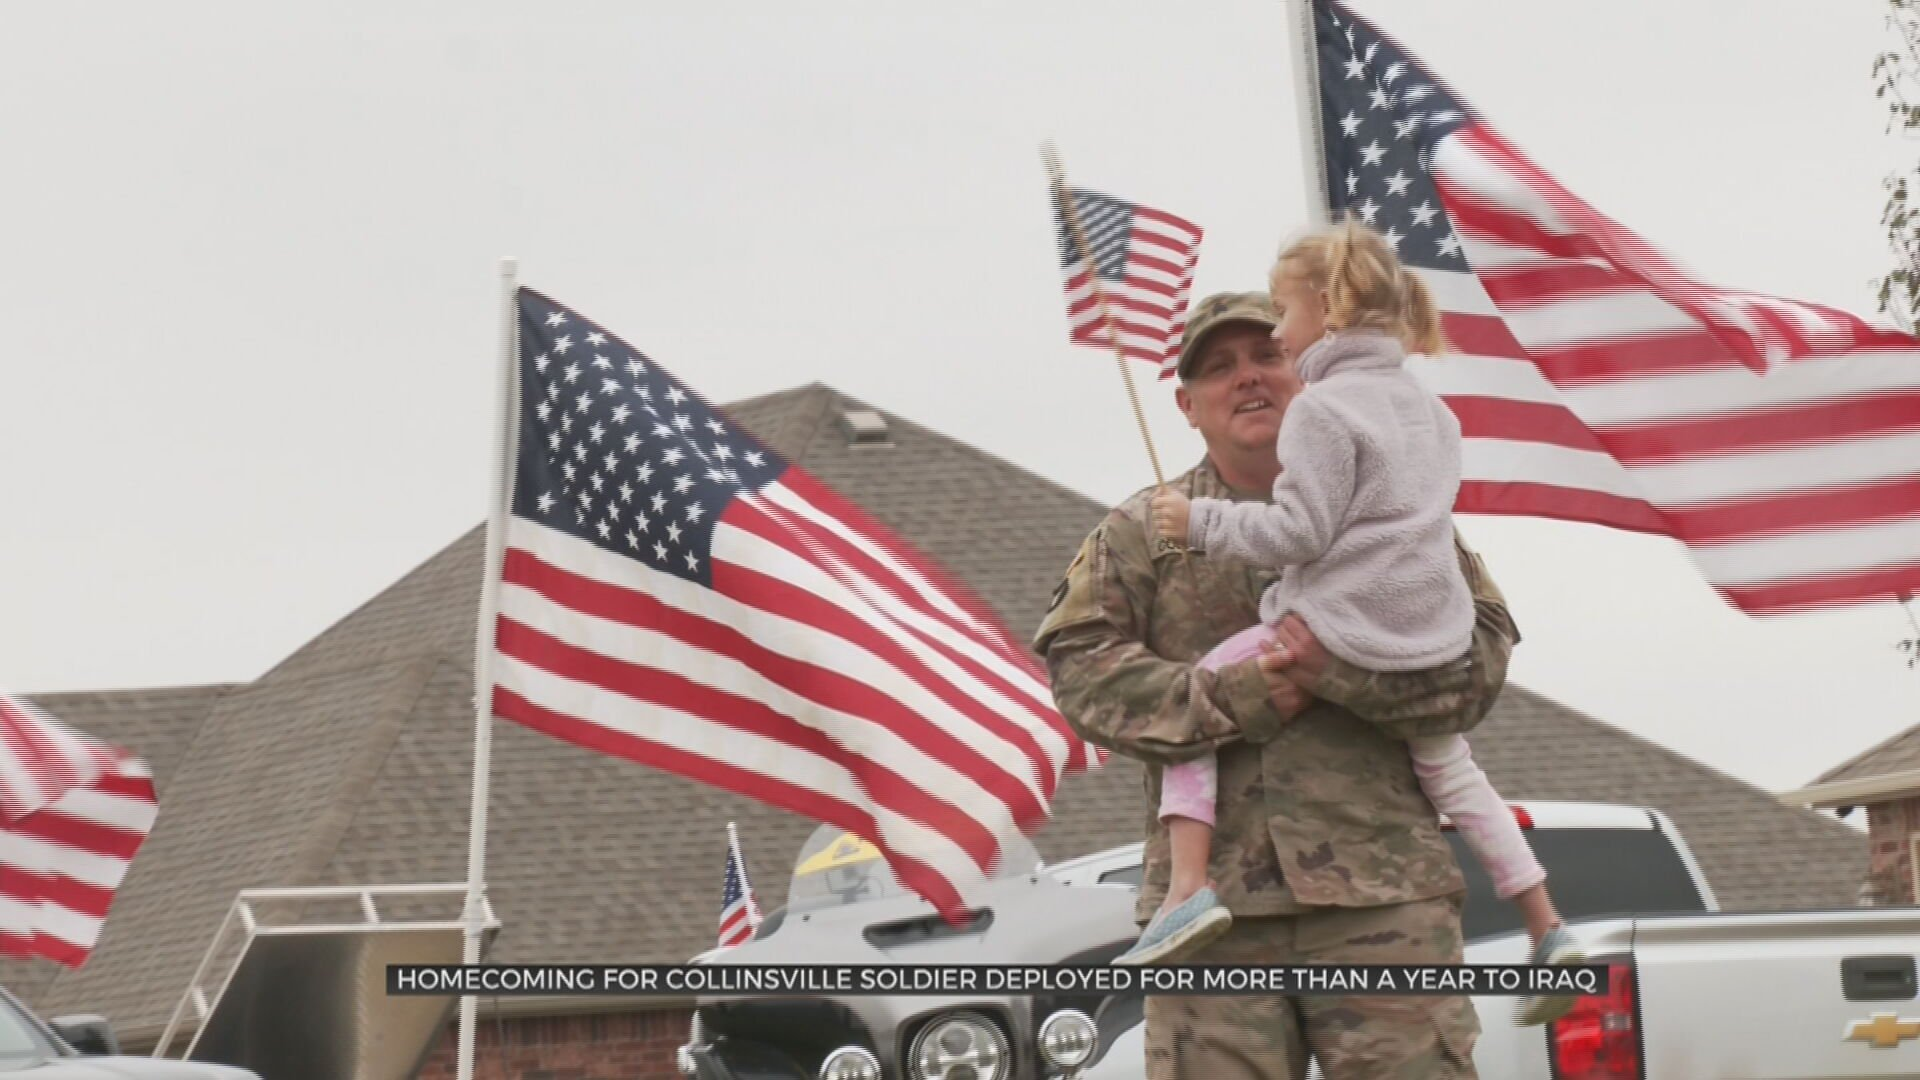 Collinsville Celebrates Homecoming Of Soldier Deployed In Iraq